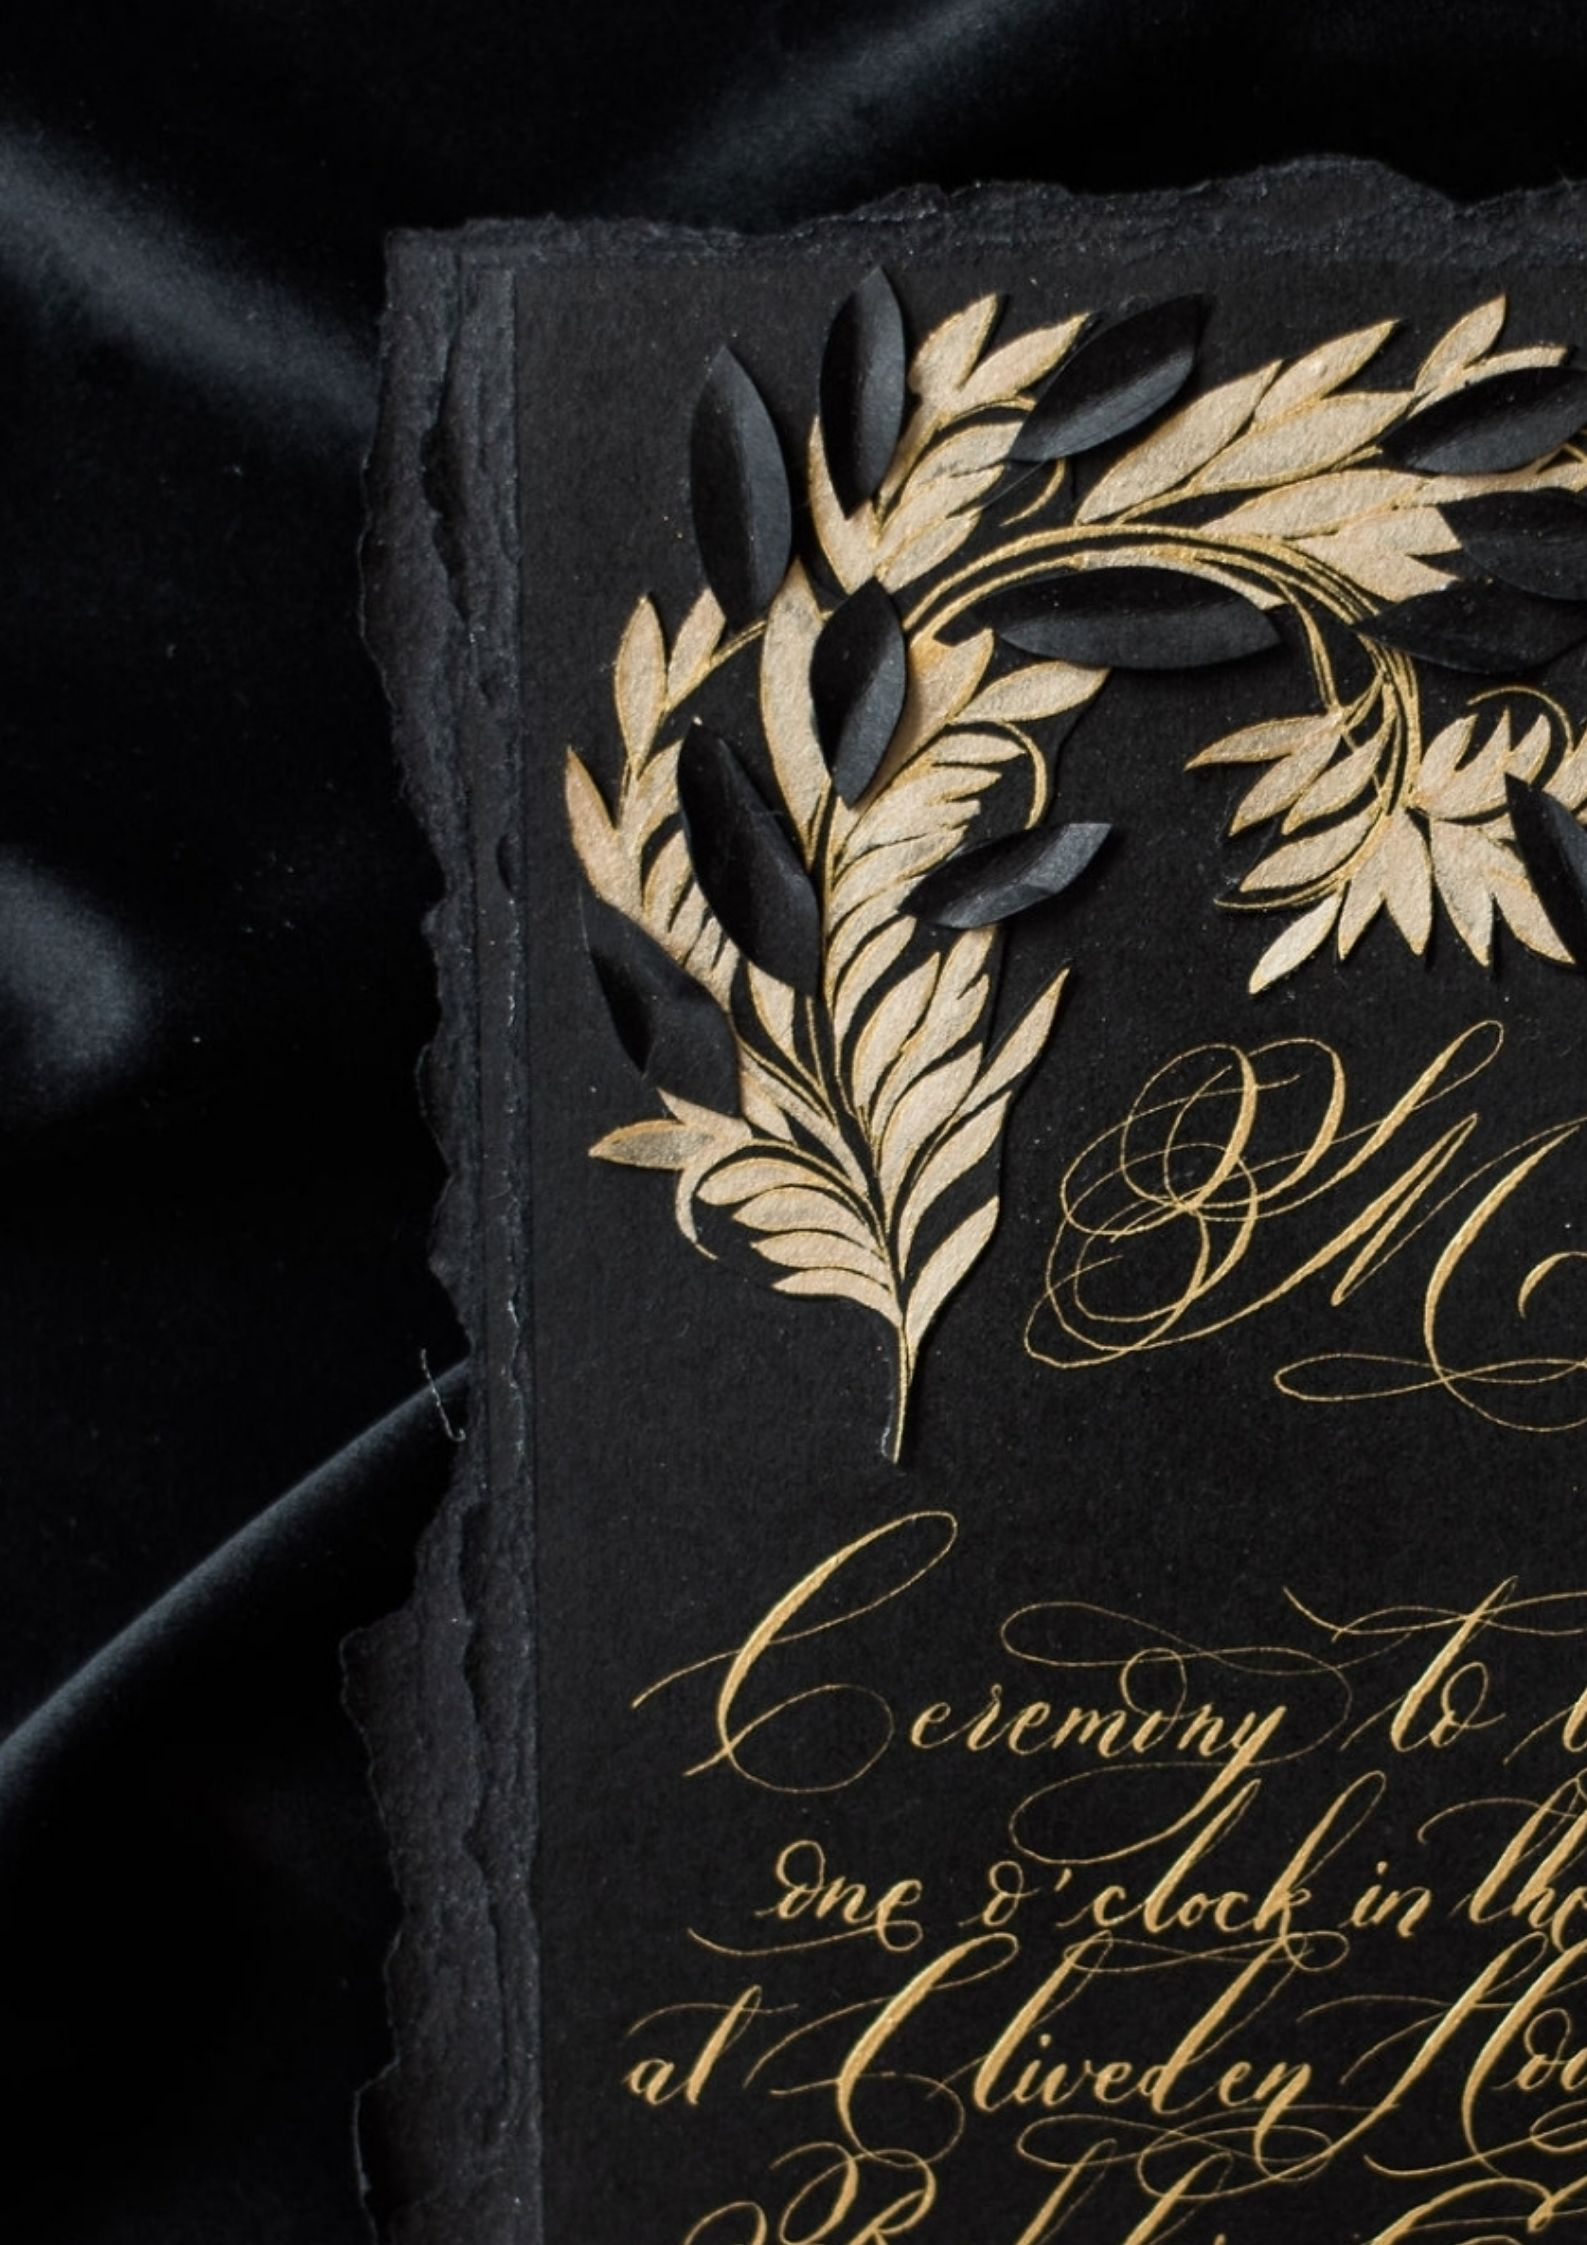 Darker wedding stationery style began to emerge